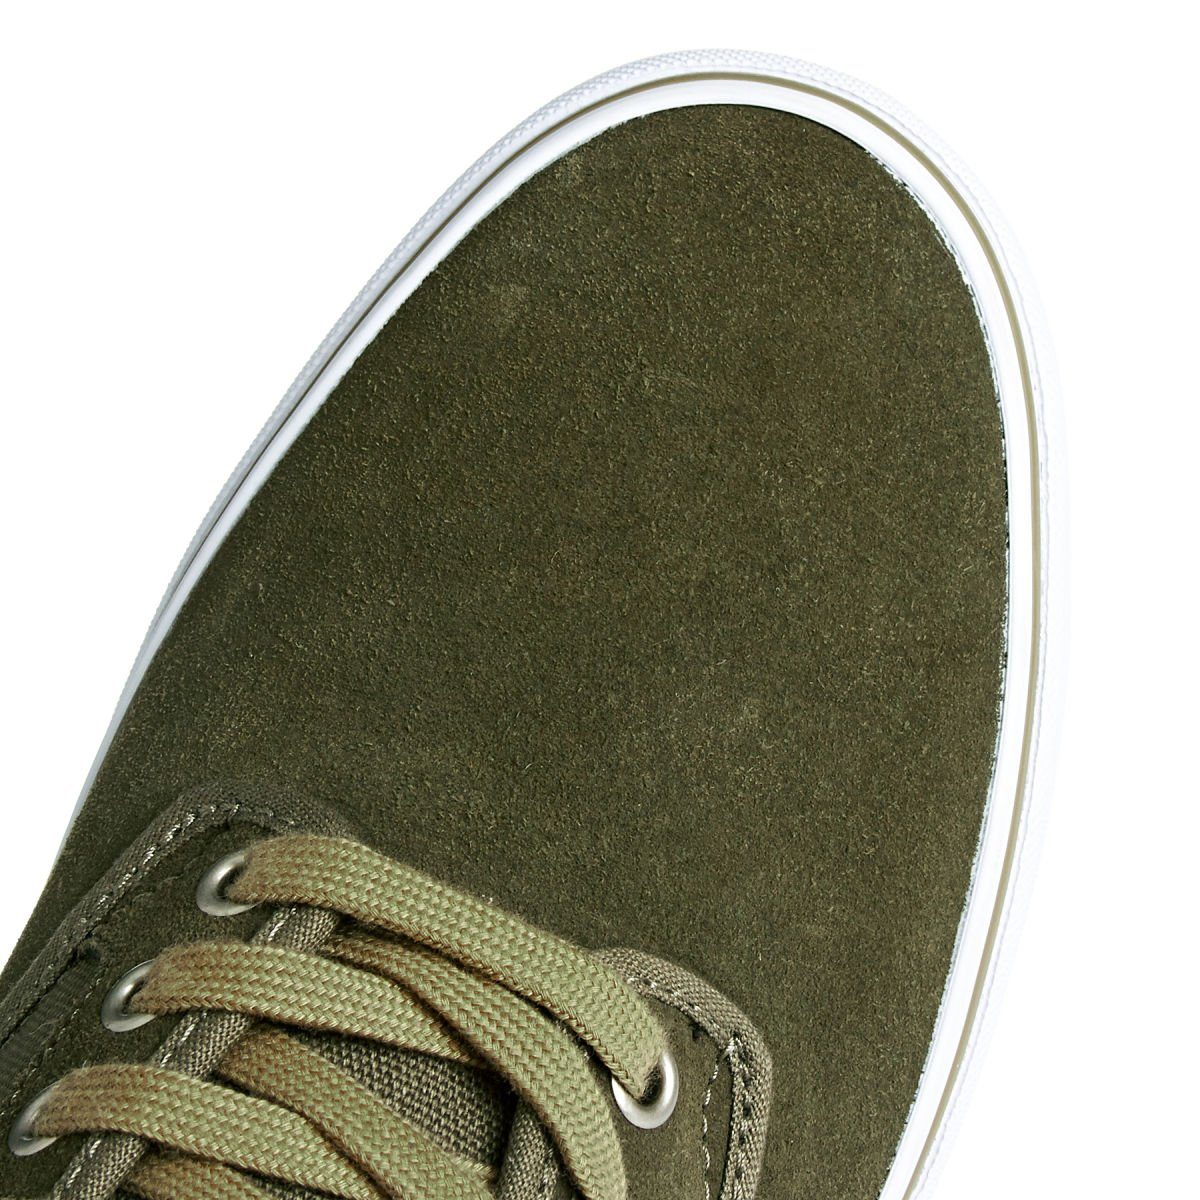 Vans Chima Ferguson Pro Ivy green/white Fall Winter 2016 - 10